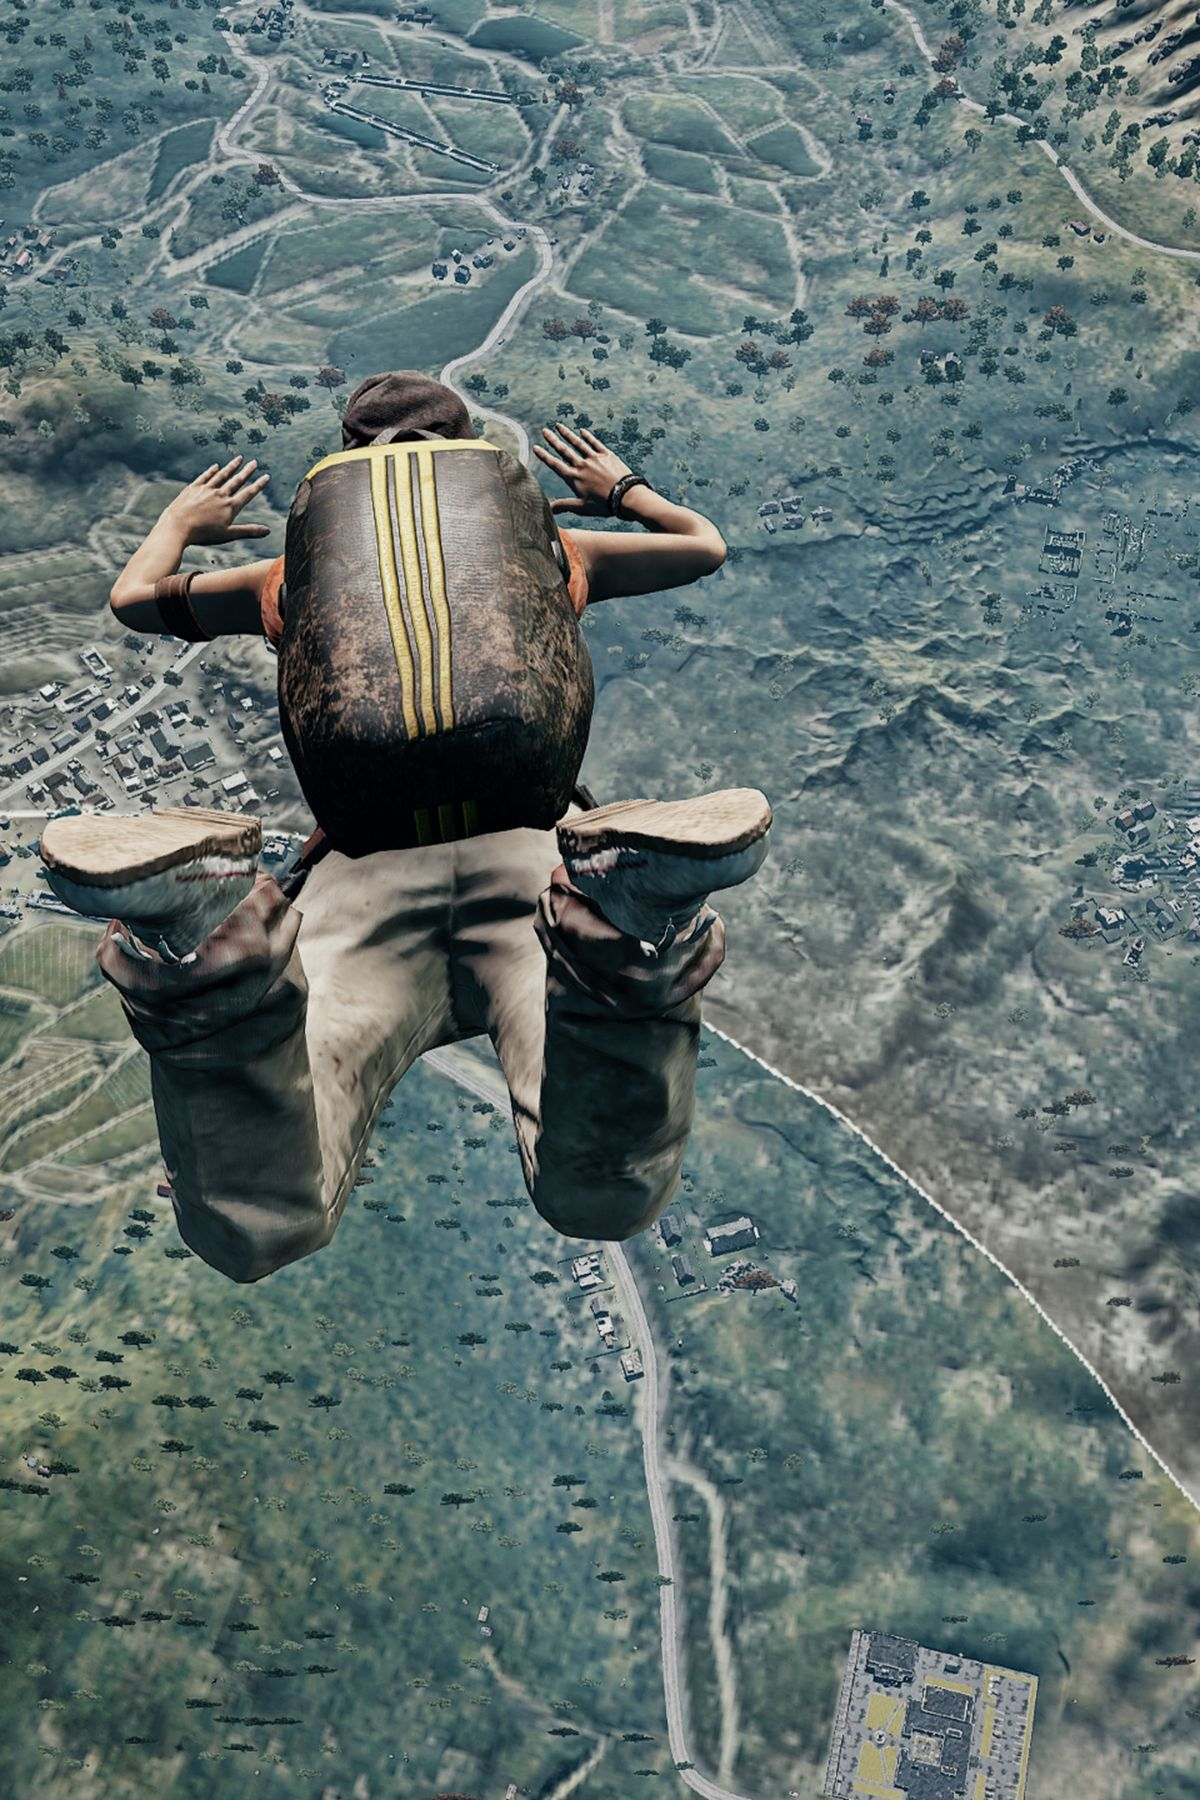 PUBG player jump from plan for fighting mobile wallpaper – Pubg Memes | Free Download